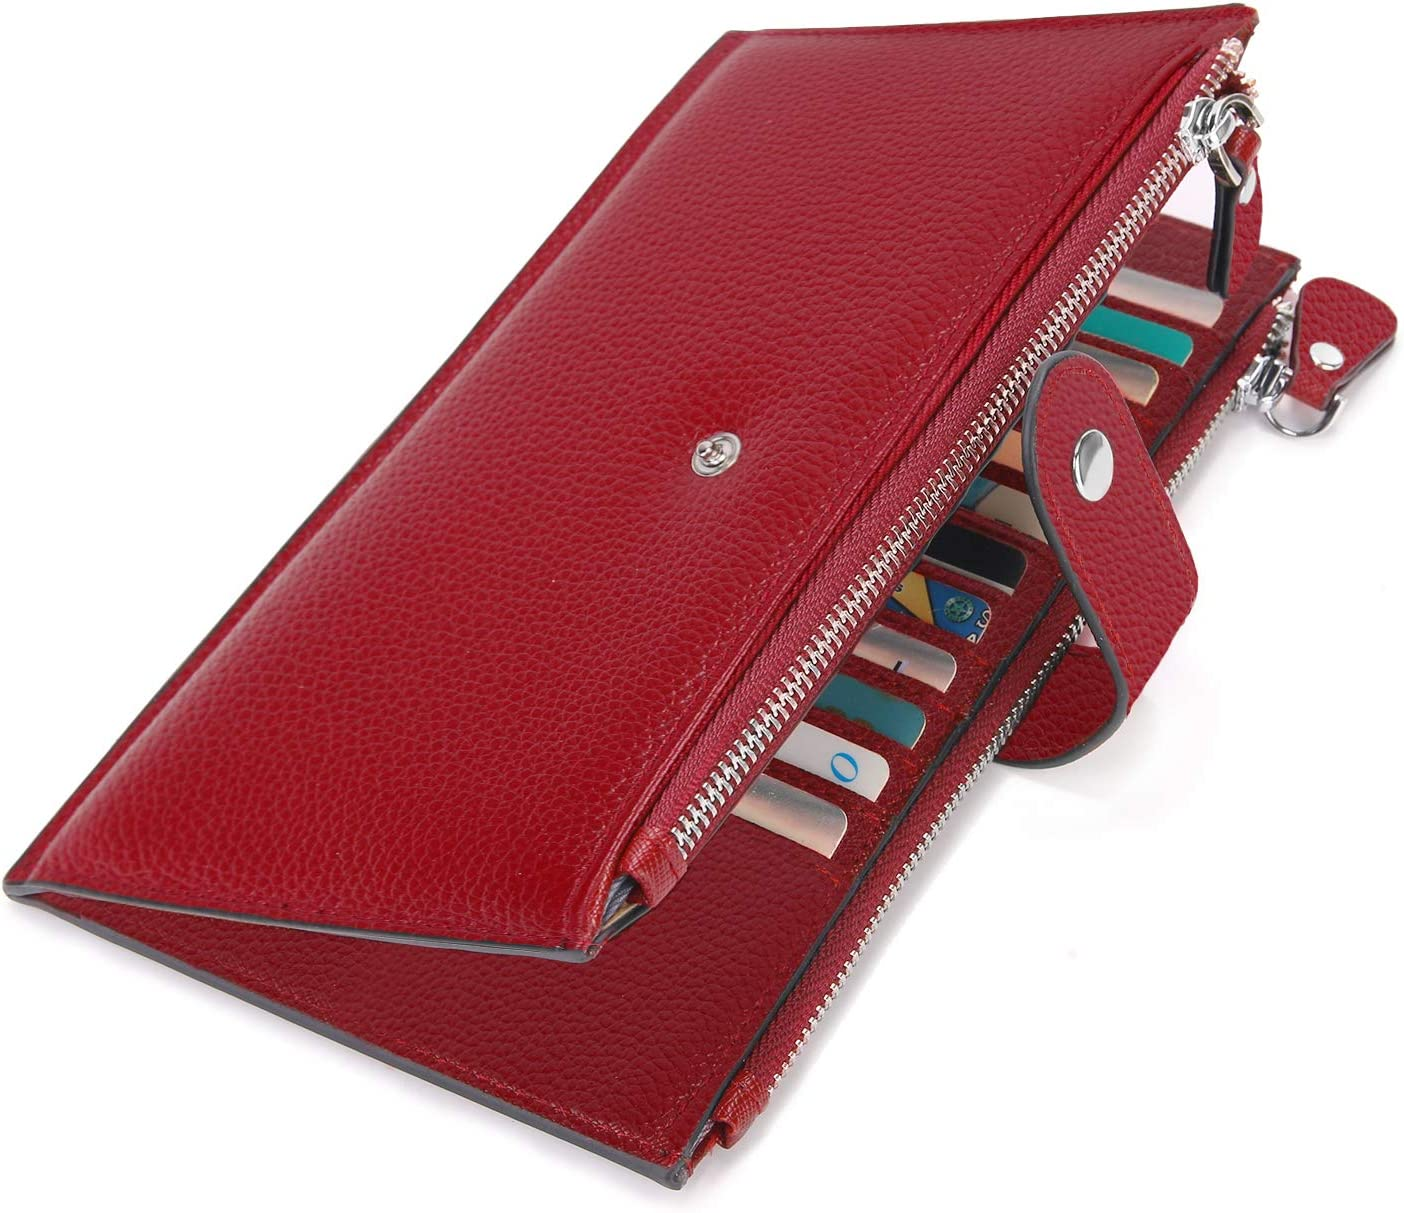 Luxury Soft leather Zip Around Credit Card Holder Concertina Fan Style Red